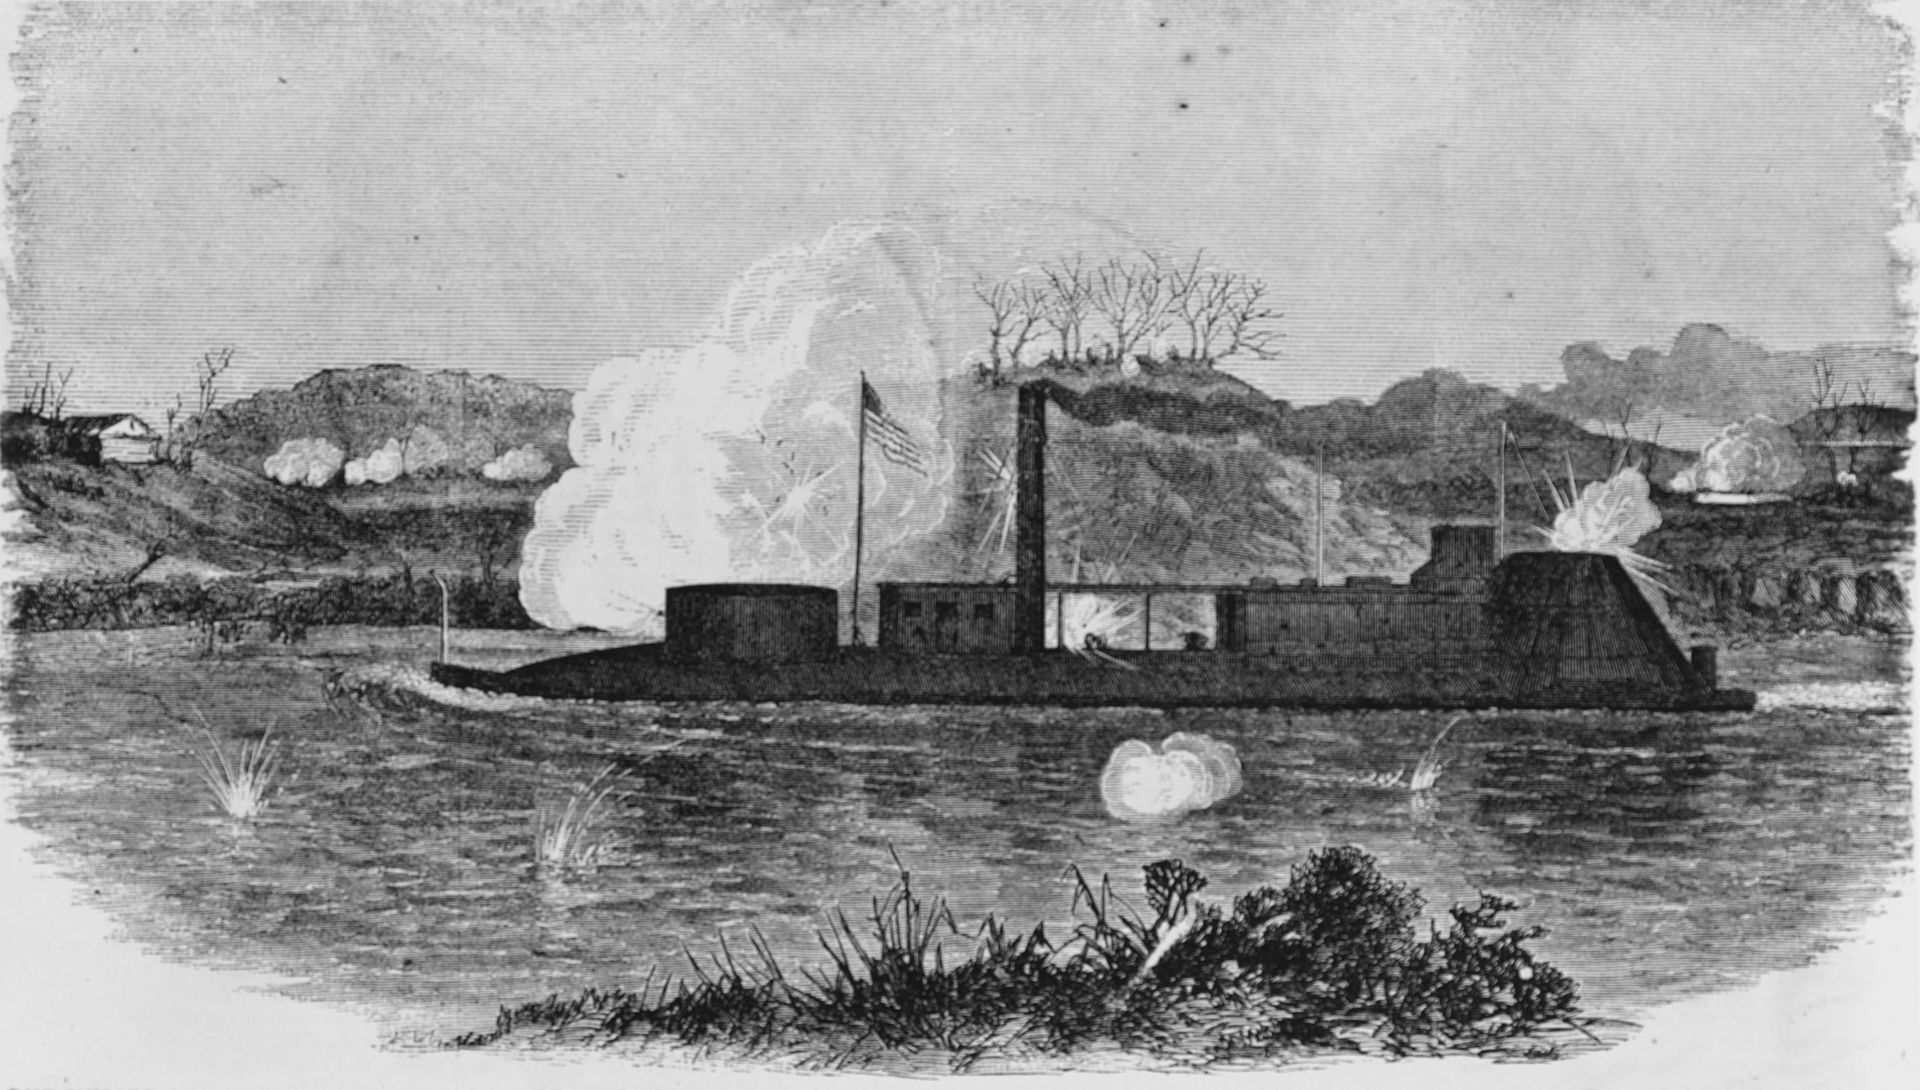 USS Neosho engaging Confederate Cannons on the North Bank of the Cumberland River, two of her sailors would receive Medals of Honor